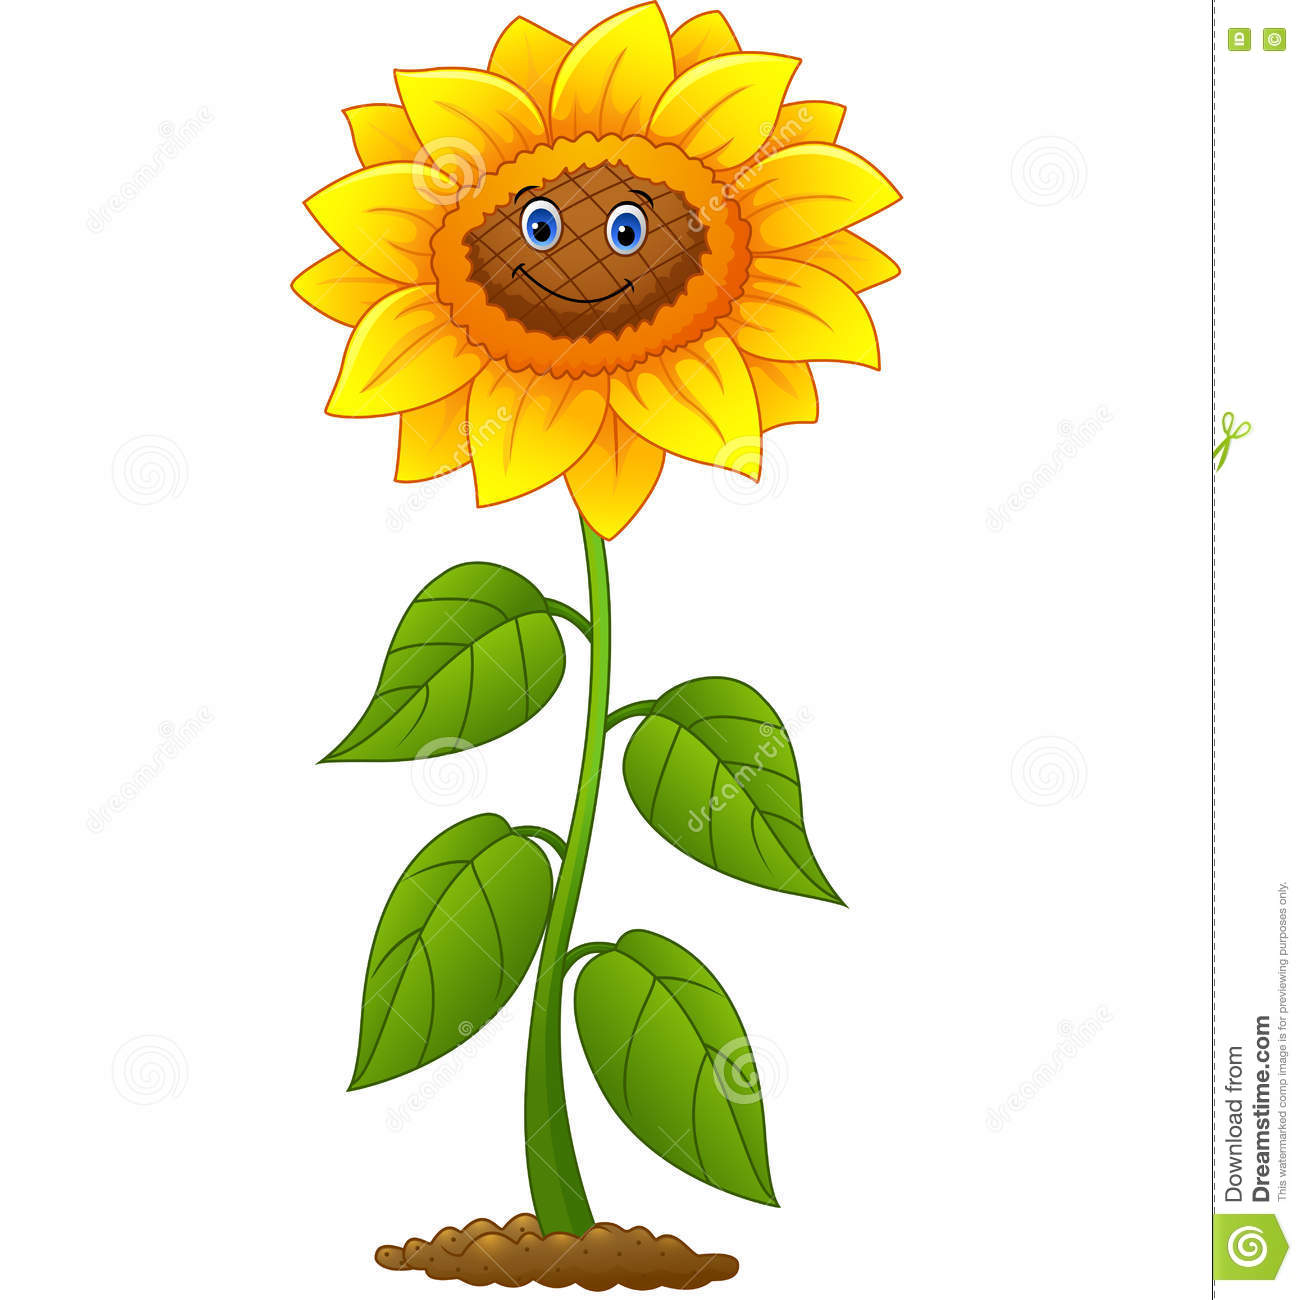 Cartoon smiling sunflower stock vector. Illustration of ...